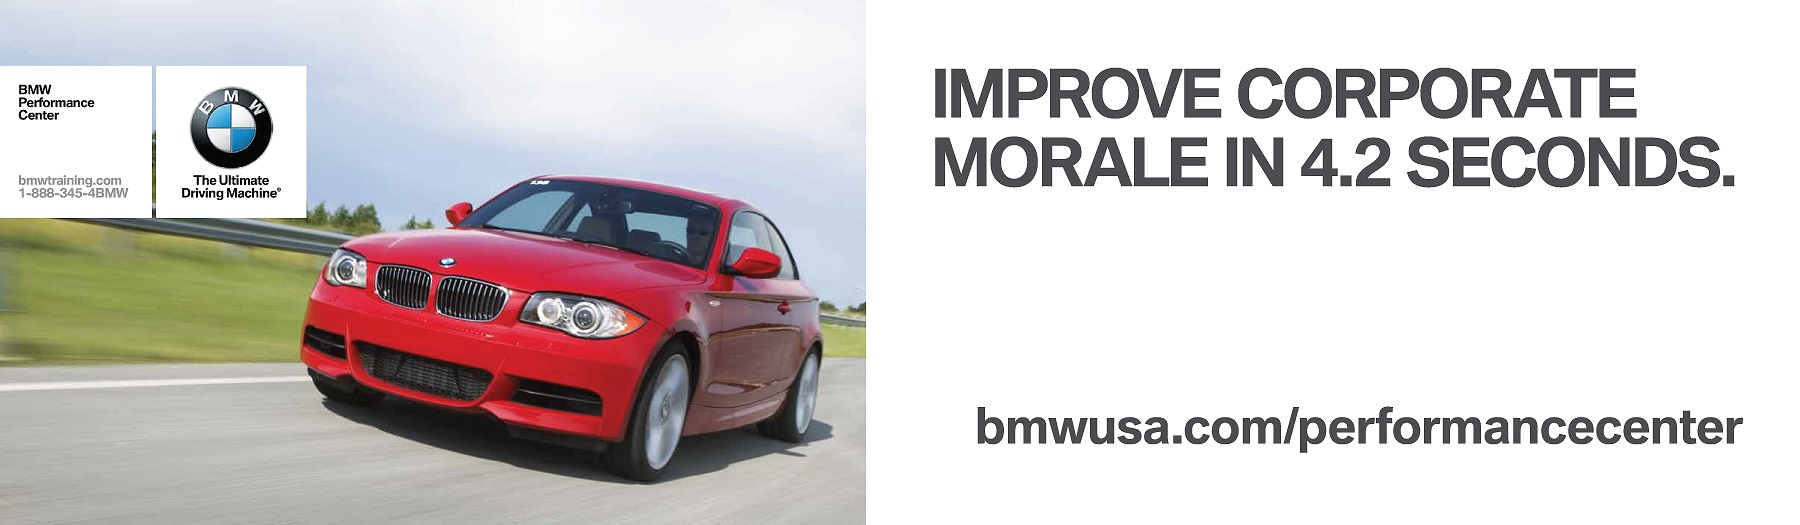 BMW-Performance-Center-advertising-copywriting-by-Lochness-Marketing-corporate-morale